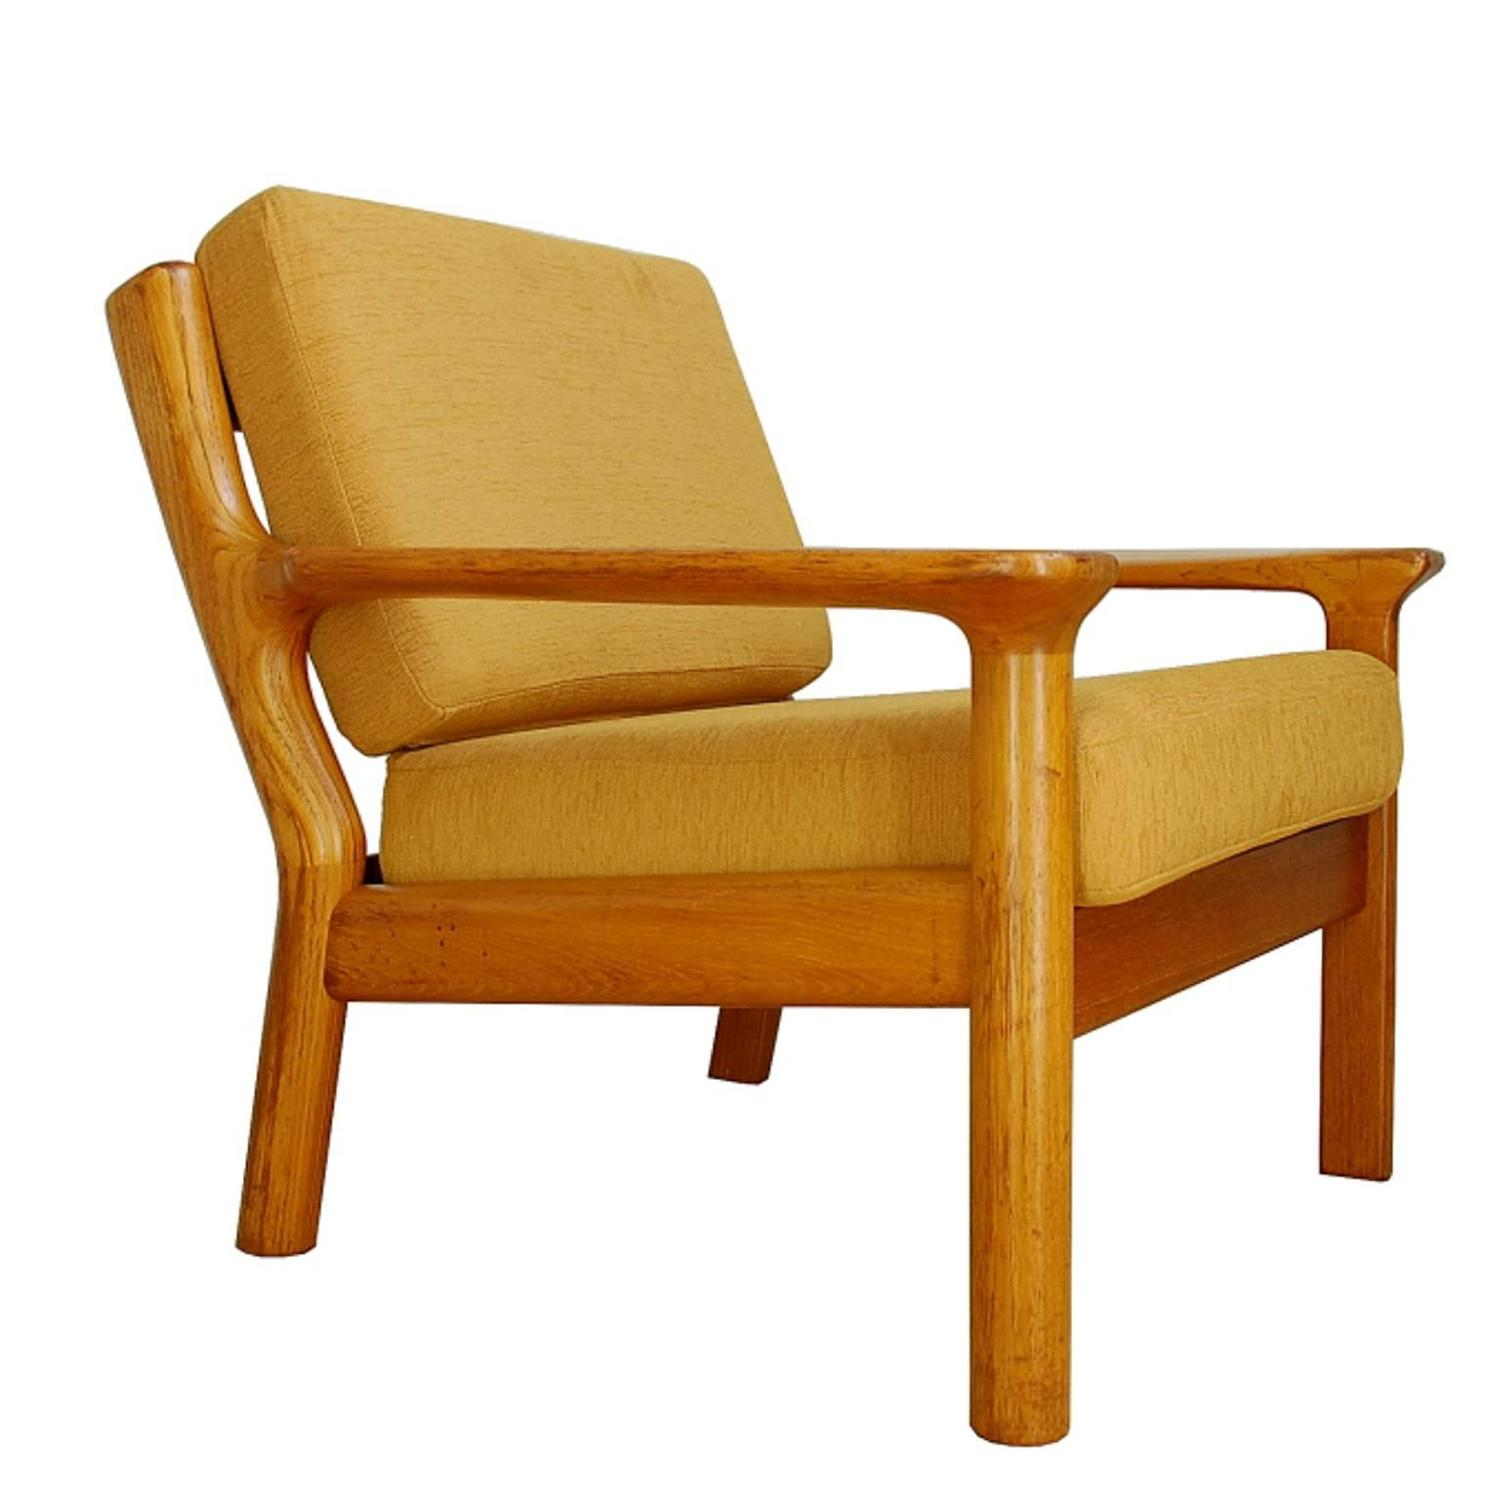 1960s Teak Lounge Chair by Glostrup Furniture at 1stdibs